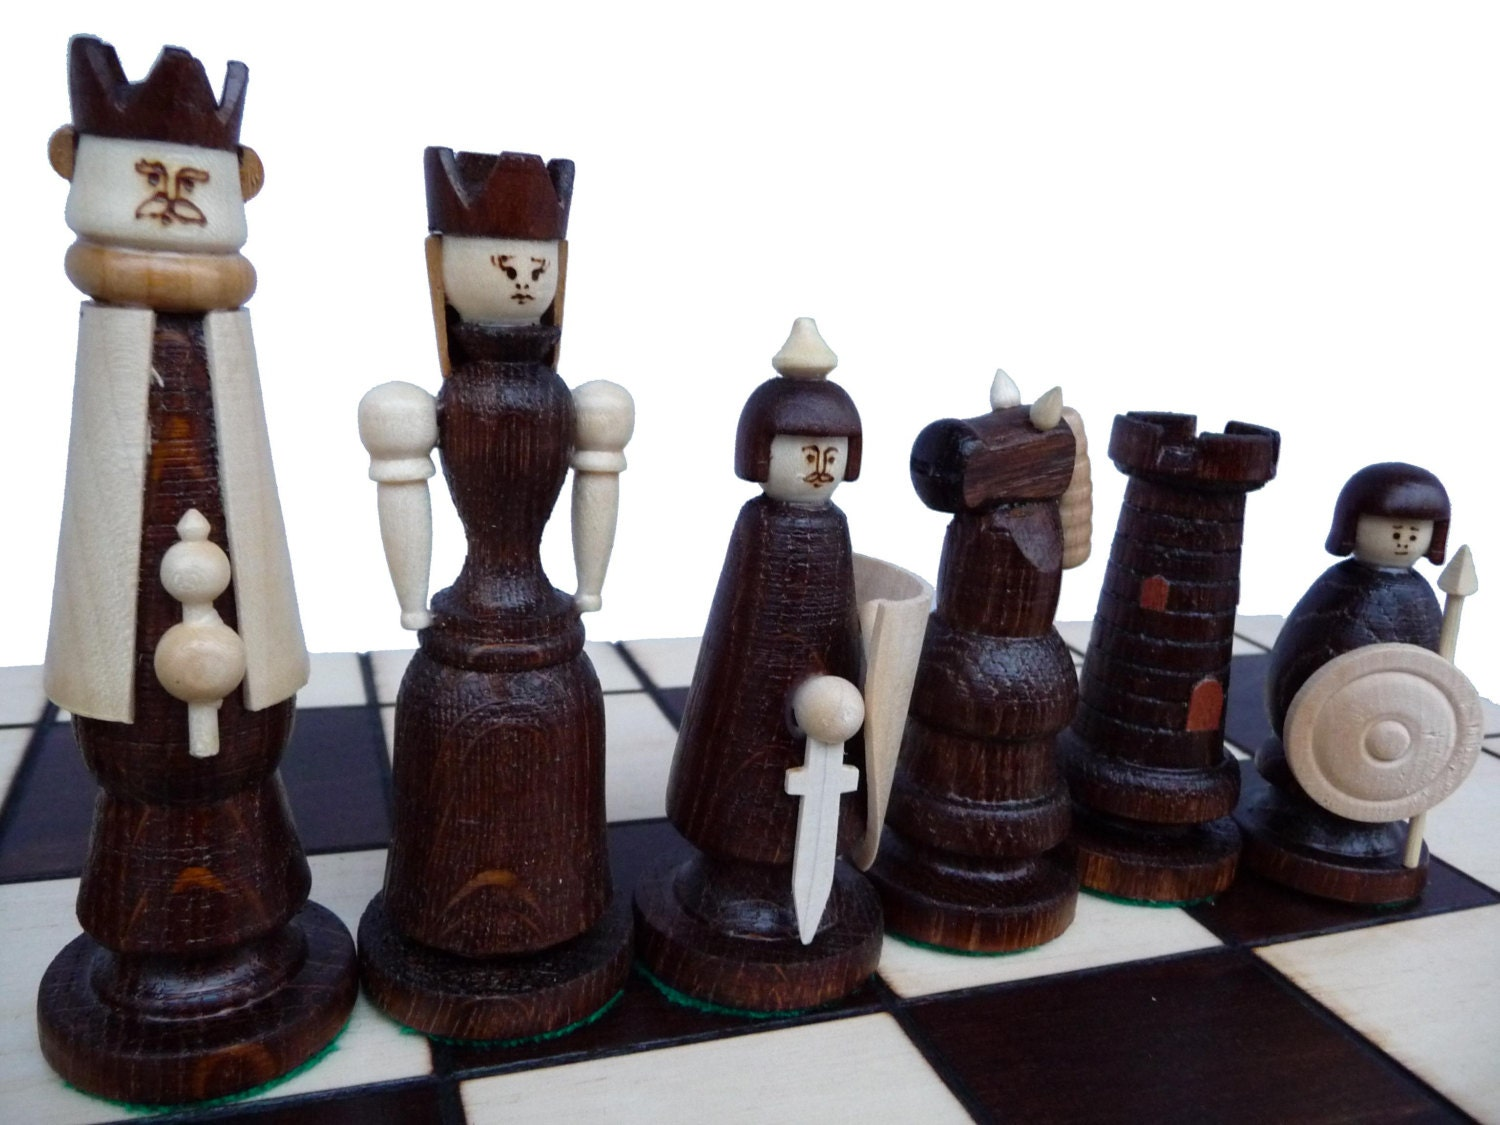 Unique Handmade Wooden Chess Set 55x55cm Gift By Stylishchess